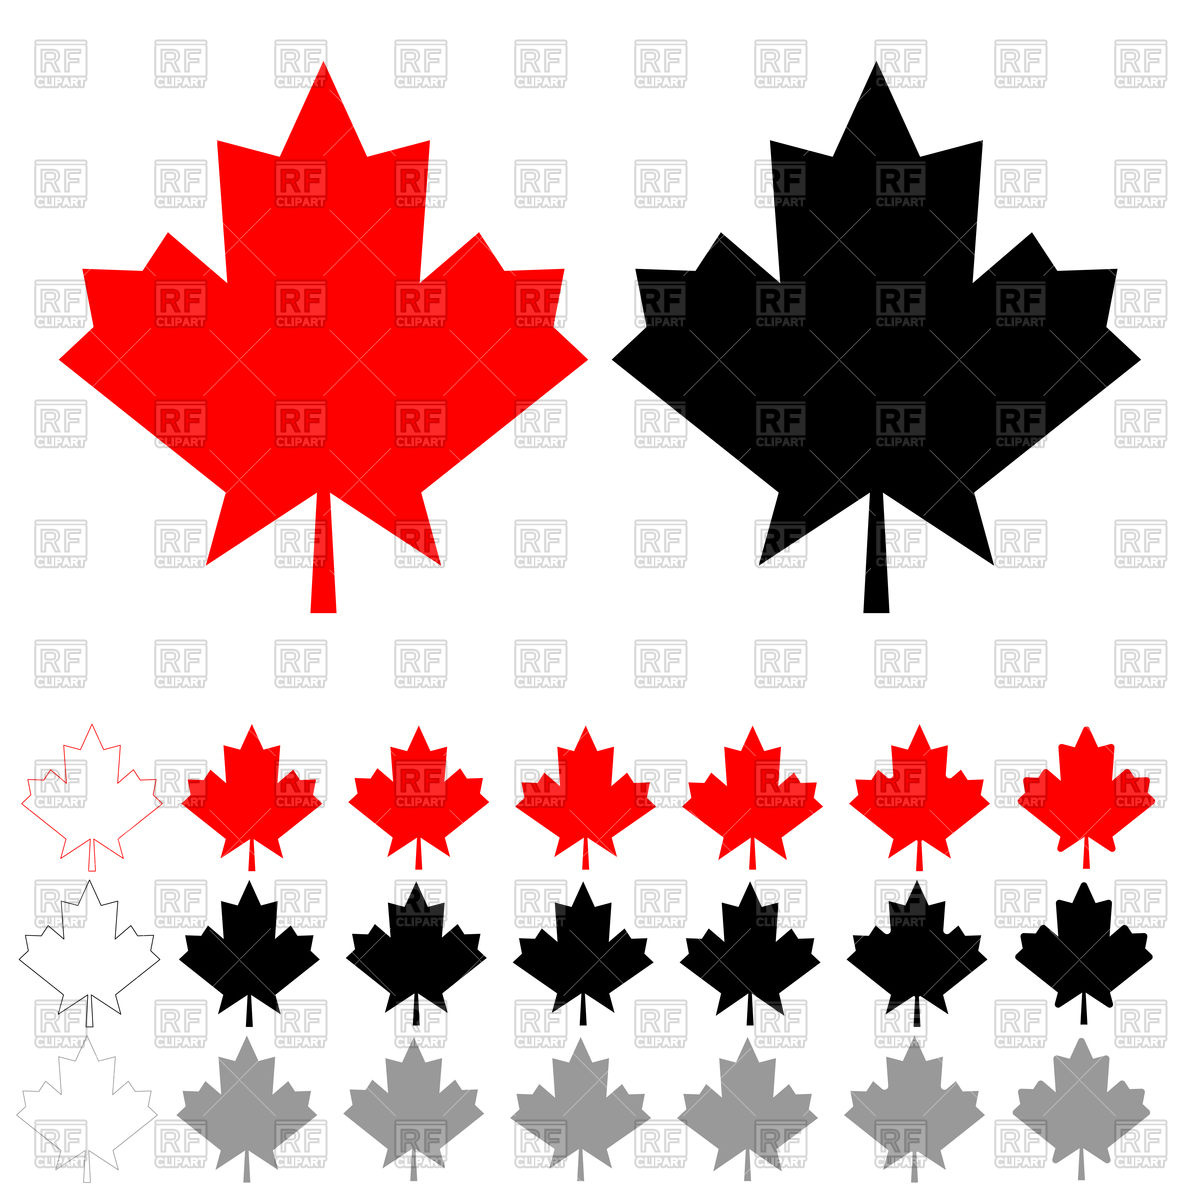 1200x1200 Red, Black And Grey Maple Leaf Vector Image Vector Artwork Of